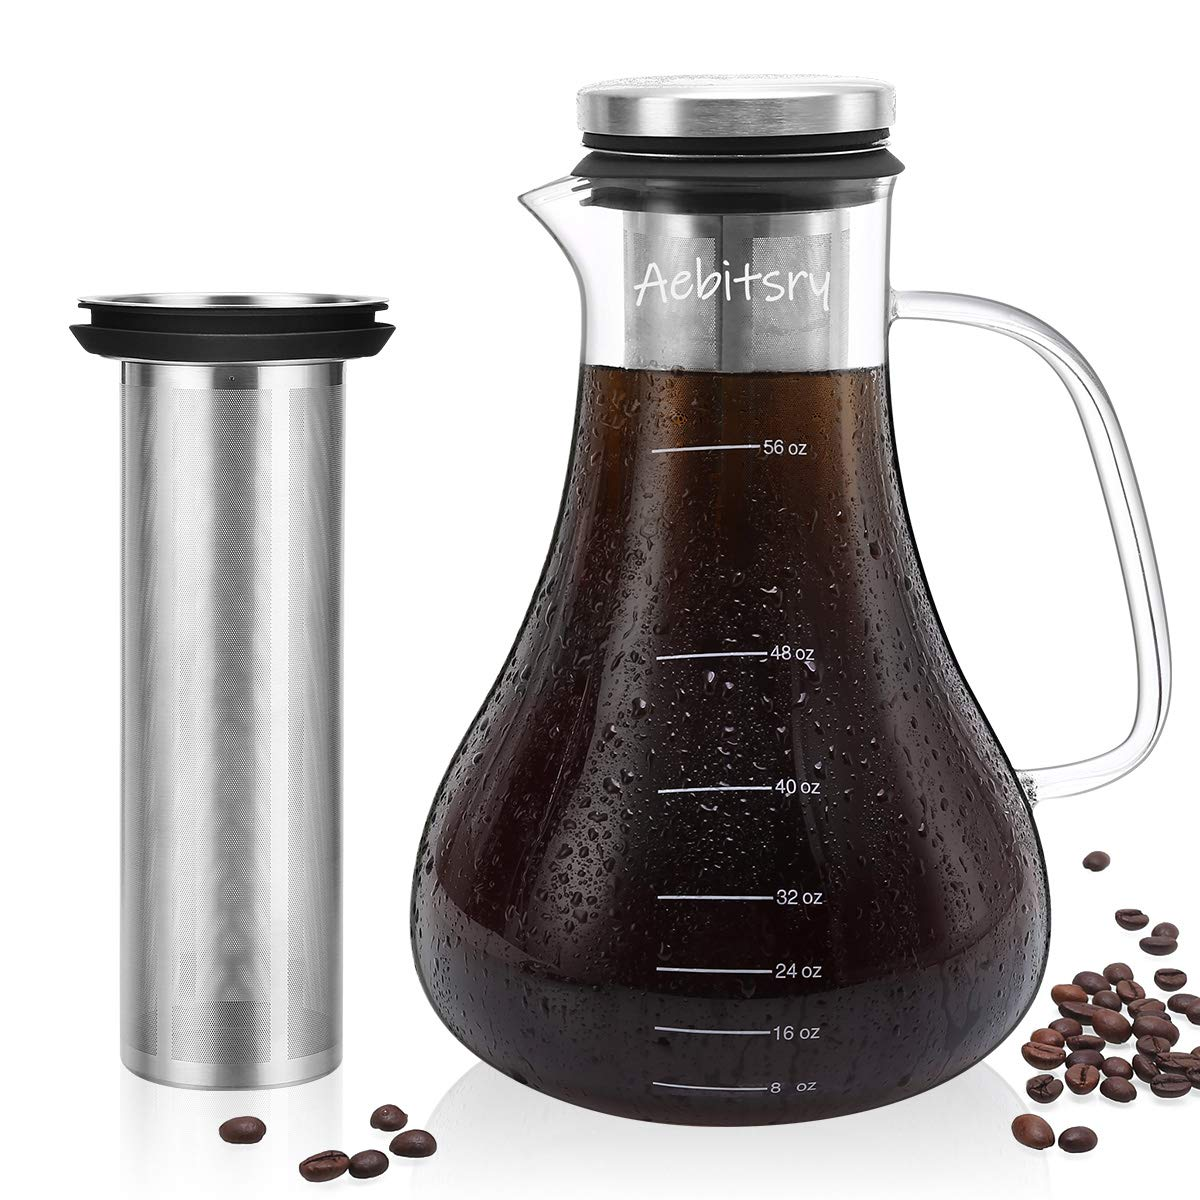 Aebitsry Cold Brew Coffee Maker, (56oz) For Homemade Iced or Hot Coffee Maker Brewer Pitcher, Airtight Thick Glass Tea Pot Infuser Carafe with Ultra Mesh Removable Stainless Steel Filter and Seal Lid